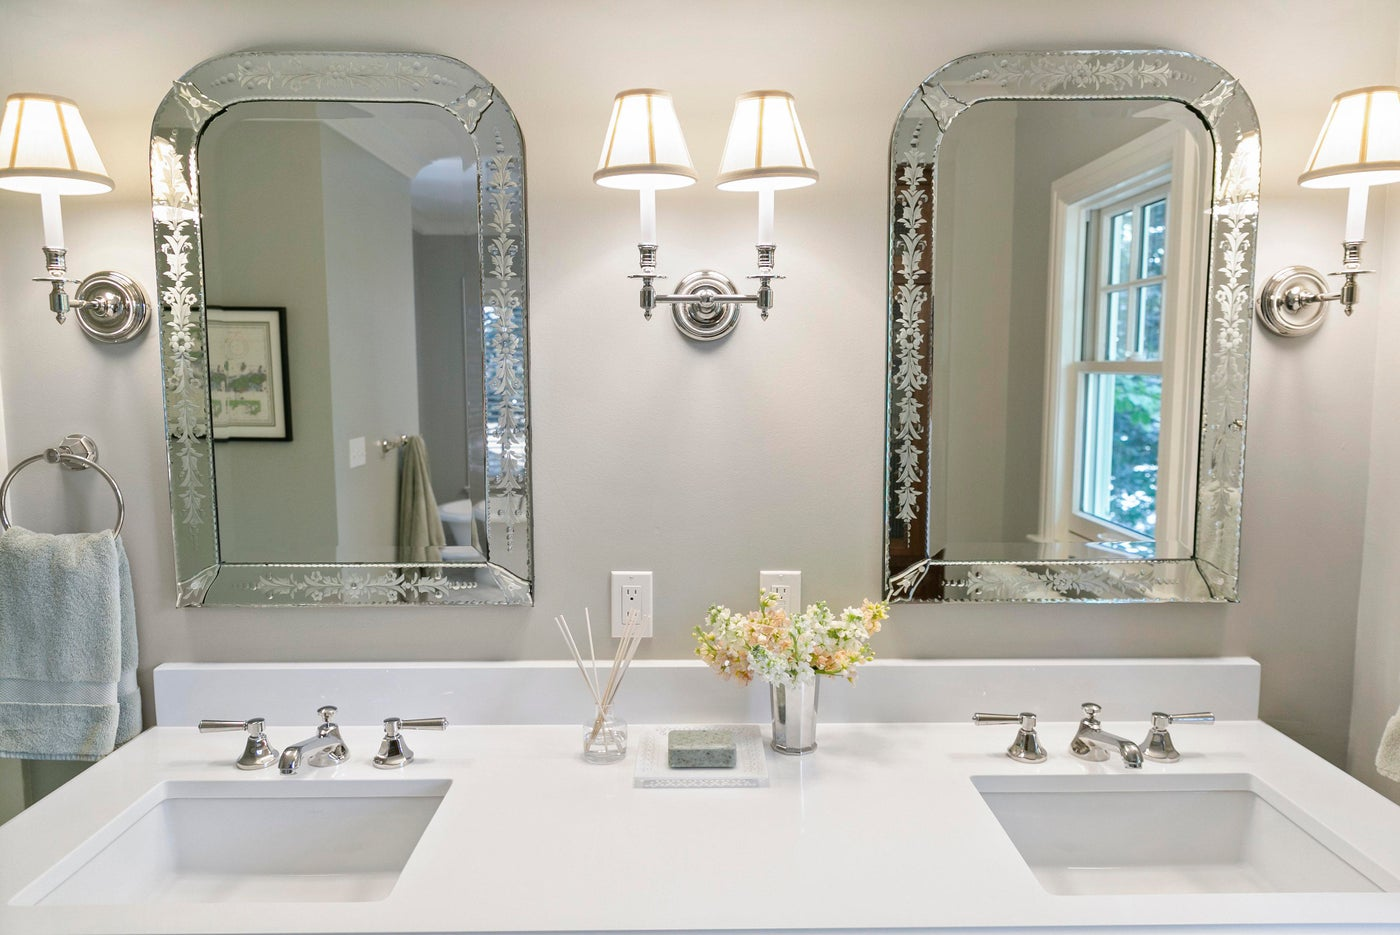 North End Boise master bathroom with white countertops, etched mirrors